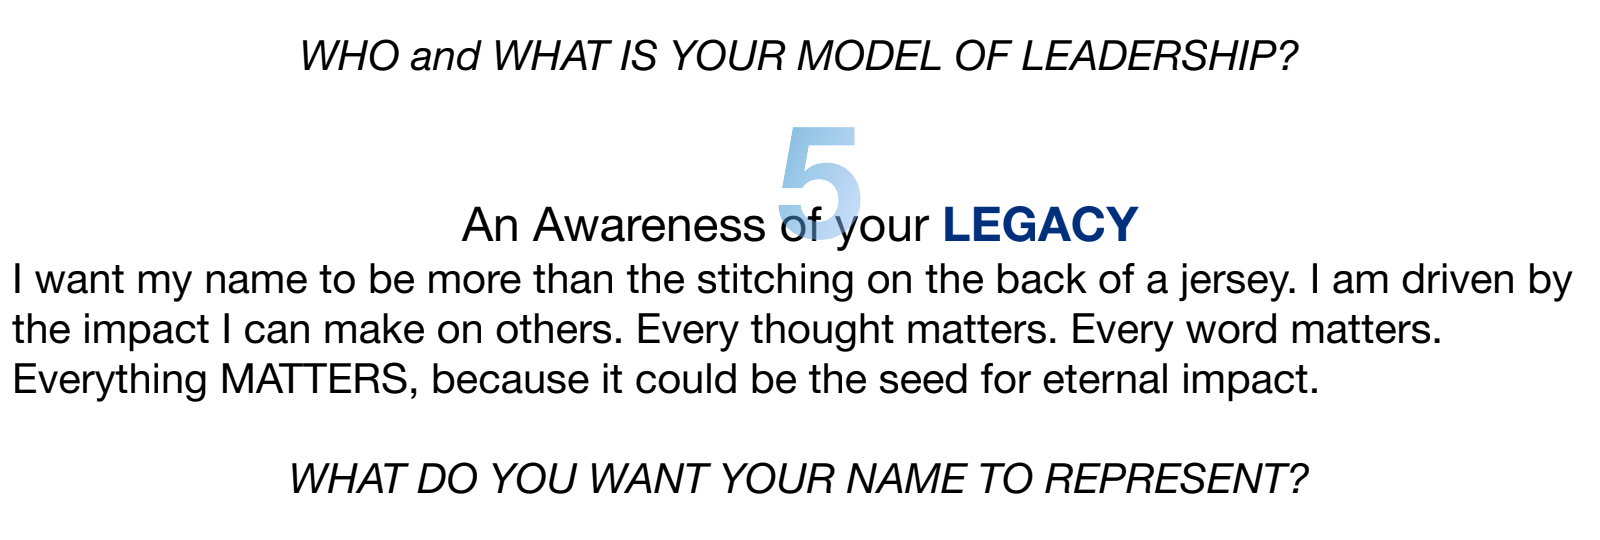 I want my name to be more than the stitching on the back of a jersey. I am driven by the impact I can make on others. Every thought matters. Every word matters. Everything MATTERS, because it could be the seed for eternal impact.